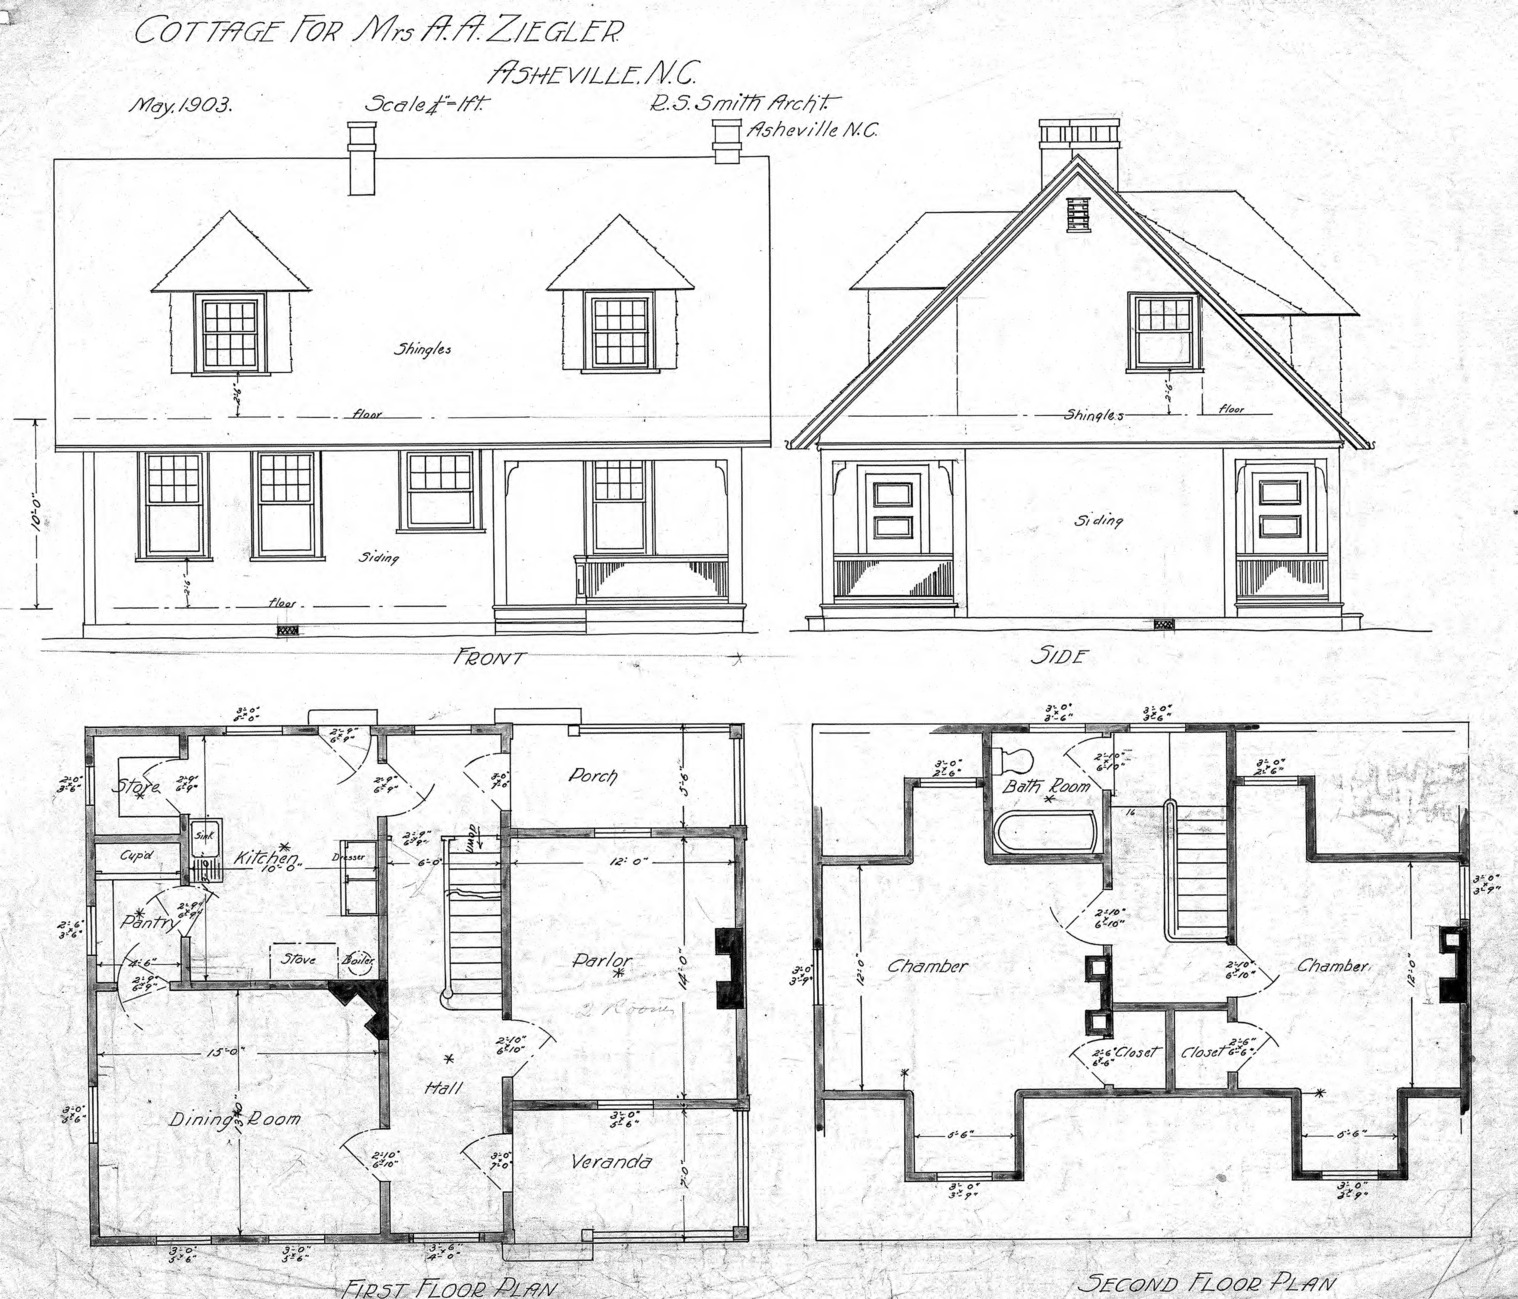 Cottage for mrs ziegler hillside street front side for Cottage floor plans